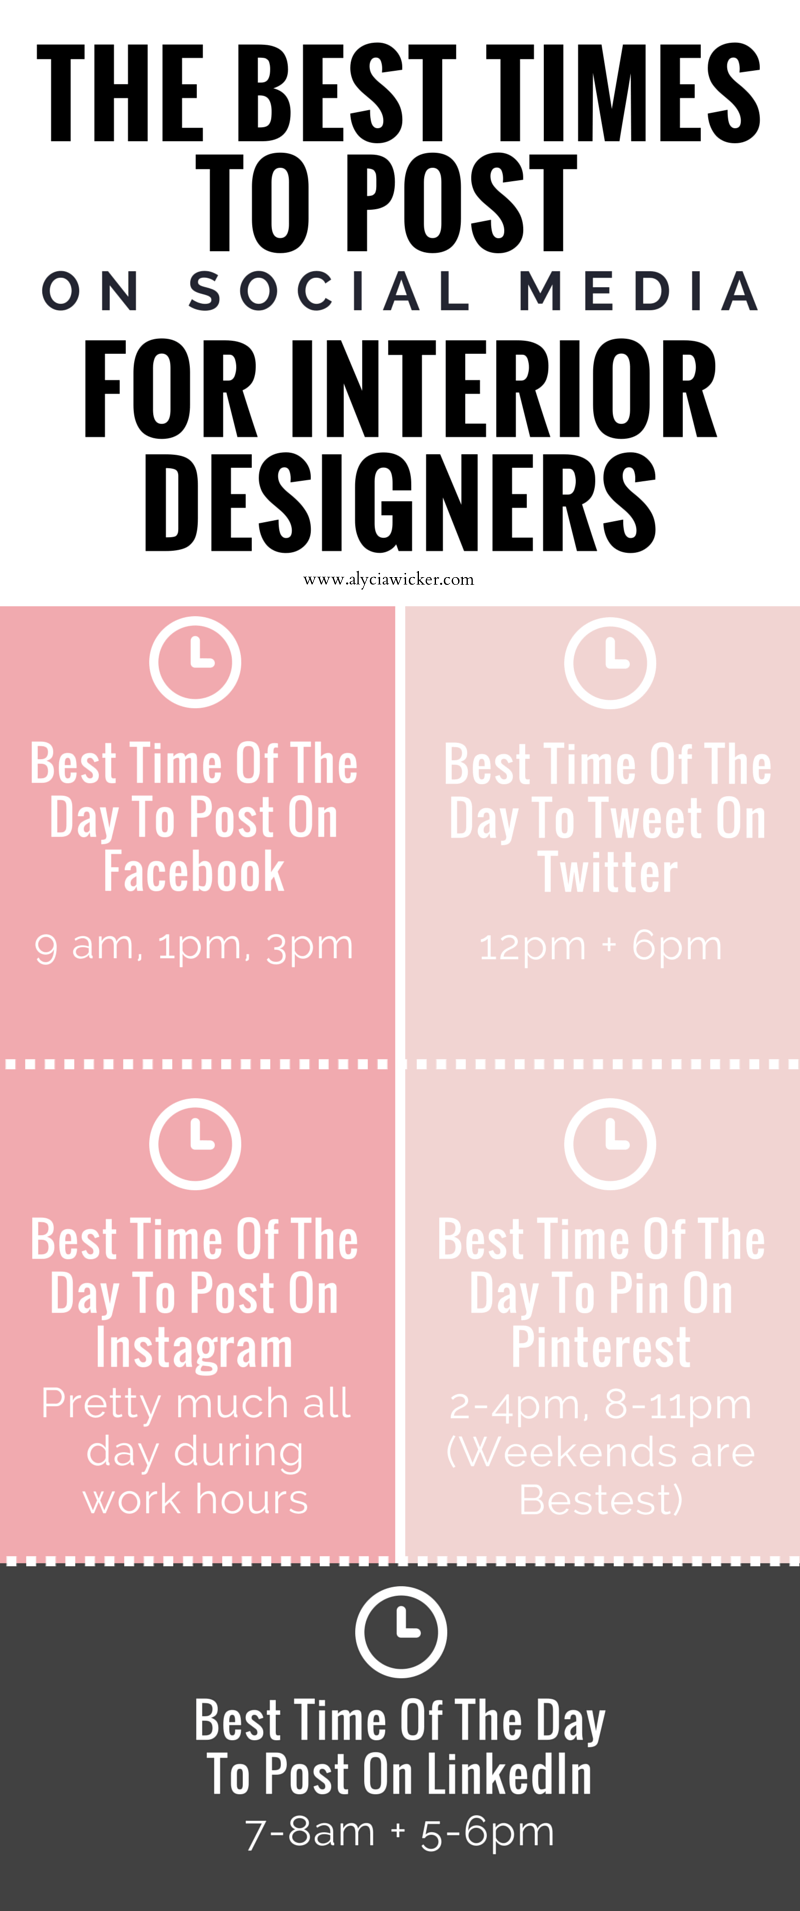 best time to post for interior designers